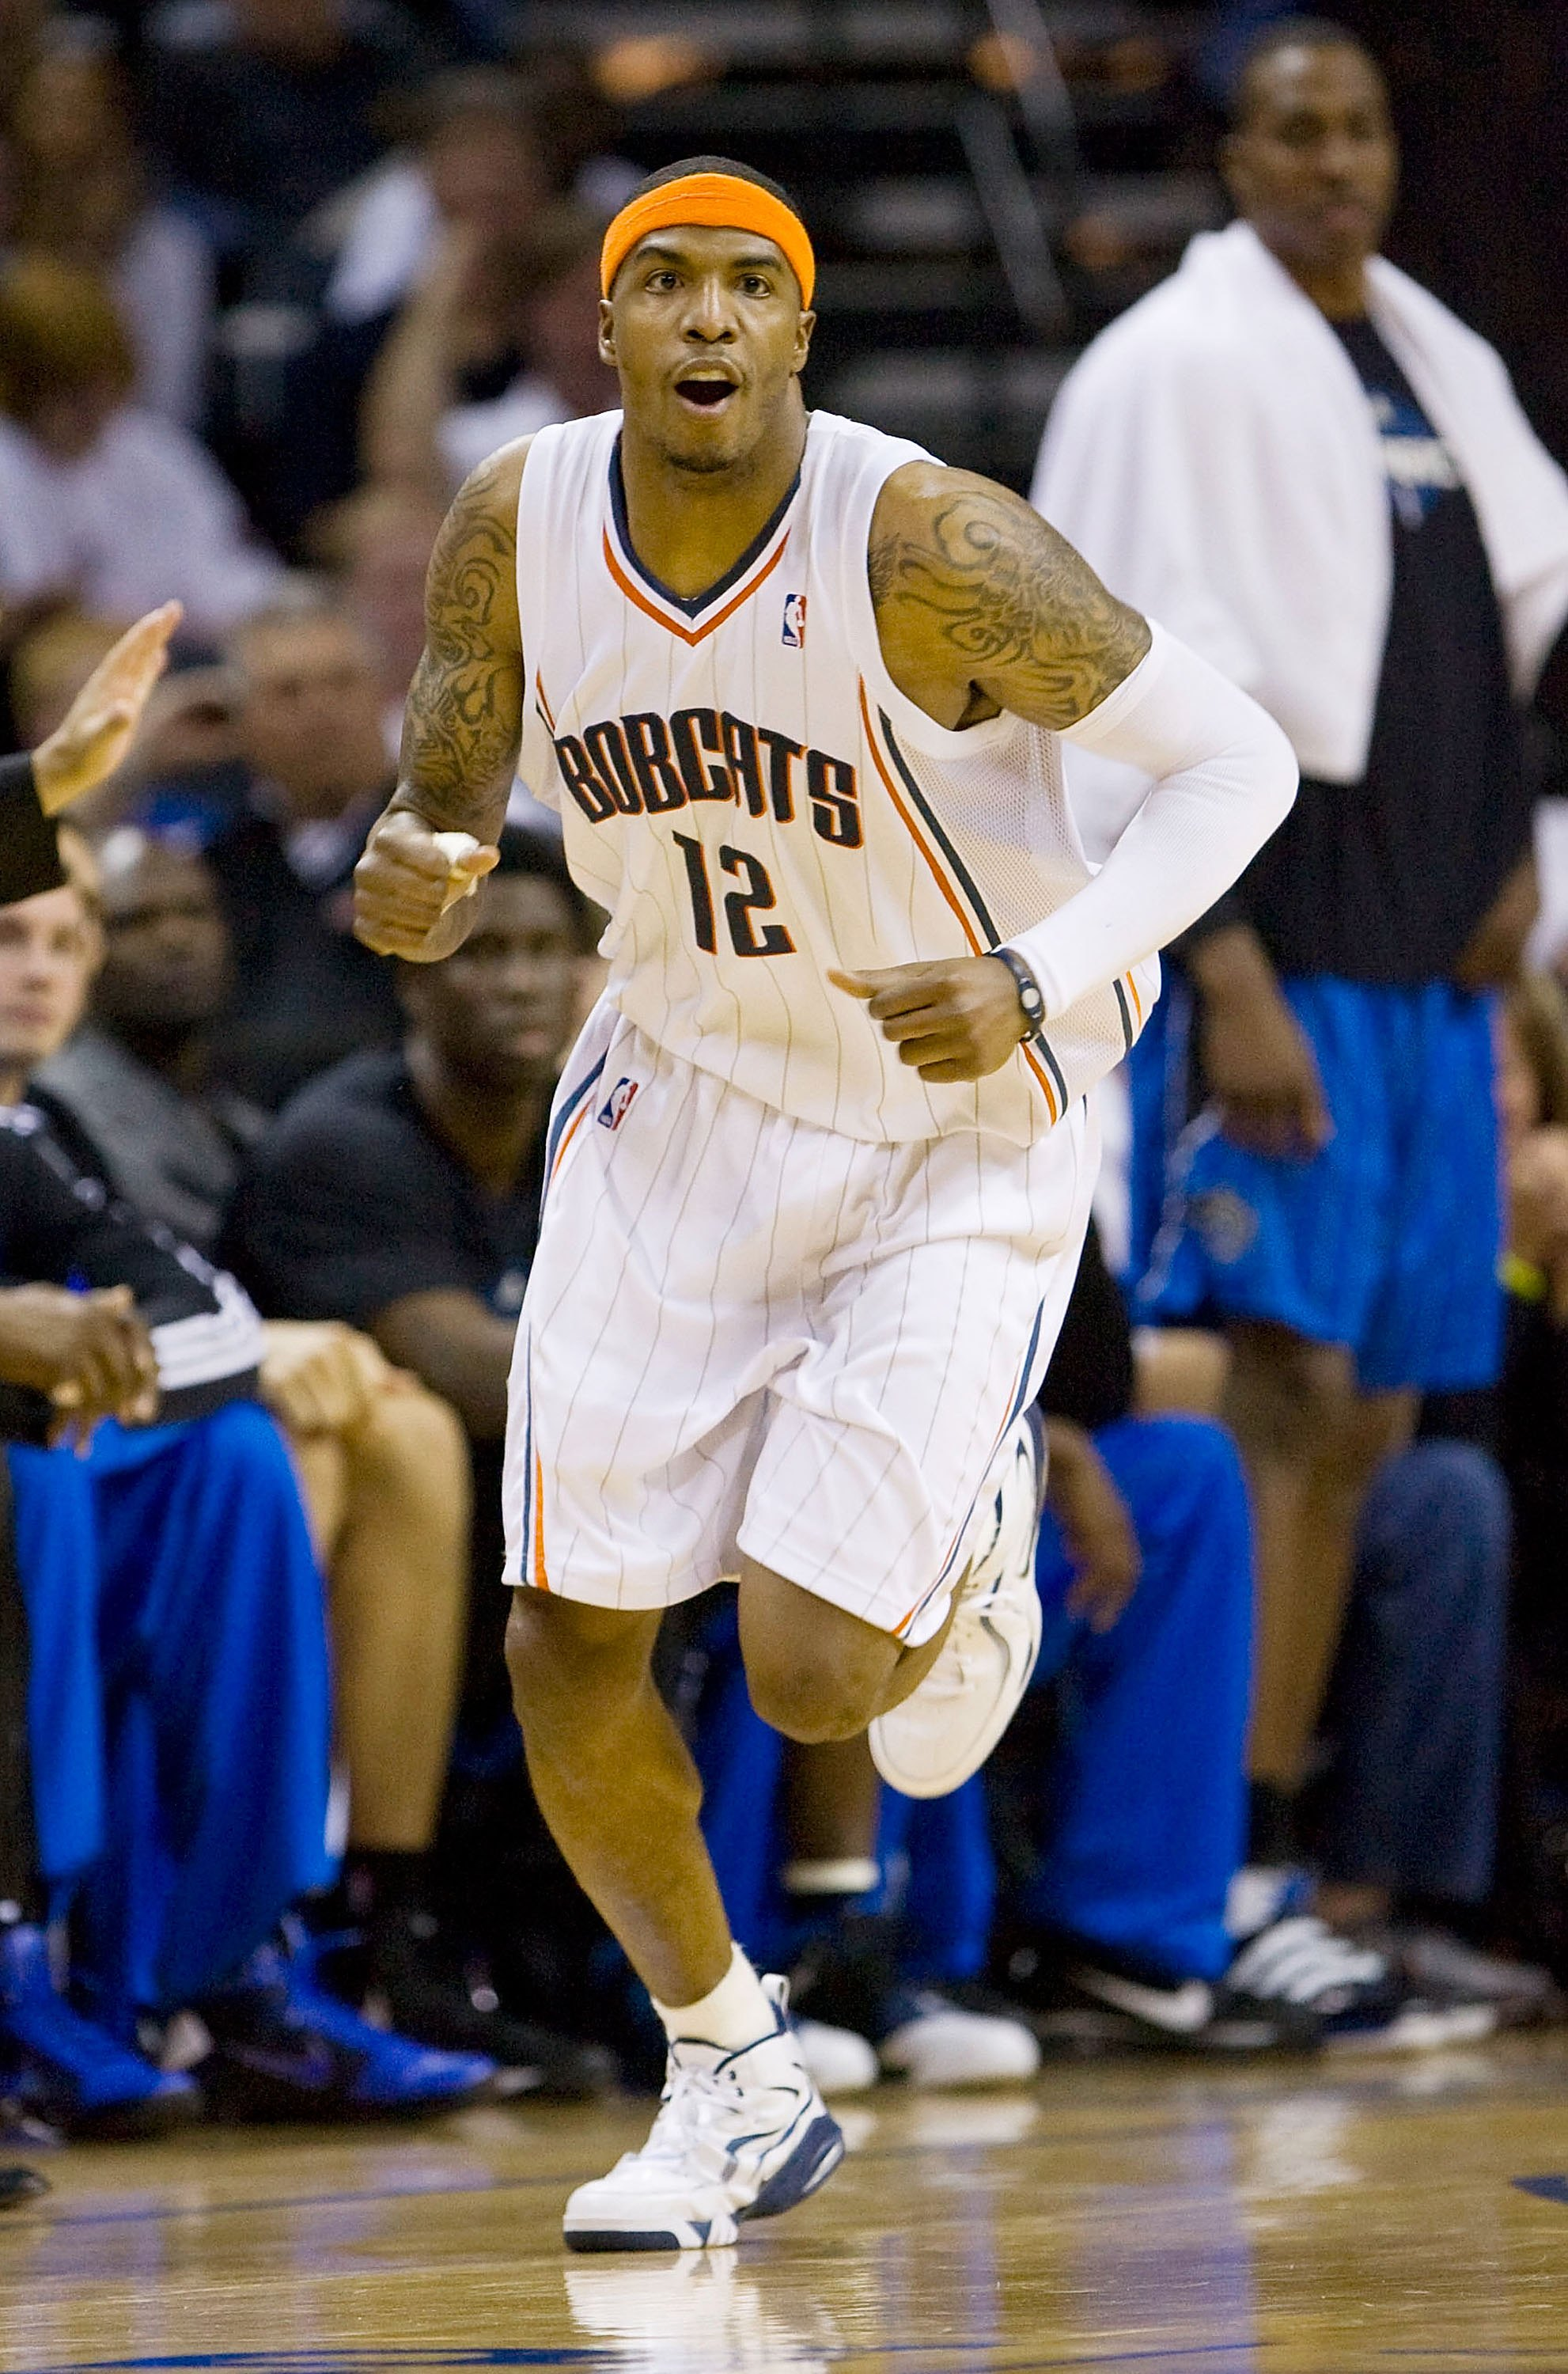 CHARLOTTE, NC - APRIL 26: Tyrus Thomas #12 of the Charlotte Bobcats reacts after making a basket against the Orlando Magic at Time Warner Cable Arena on April 26, 2010 in Charlotte, North Carolina.  The Magic defeated the Bobcats 99-90 to complete the fou